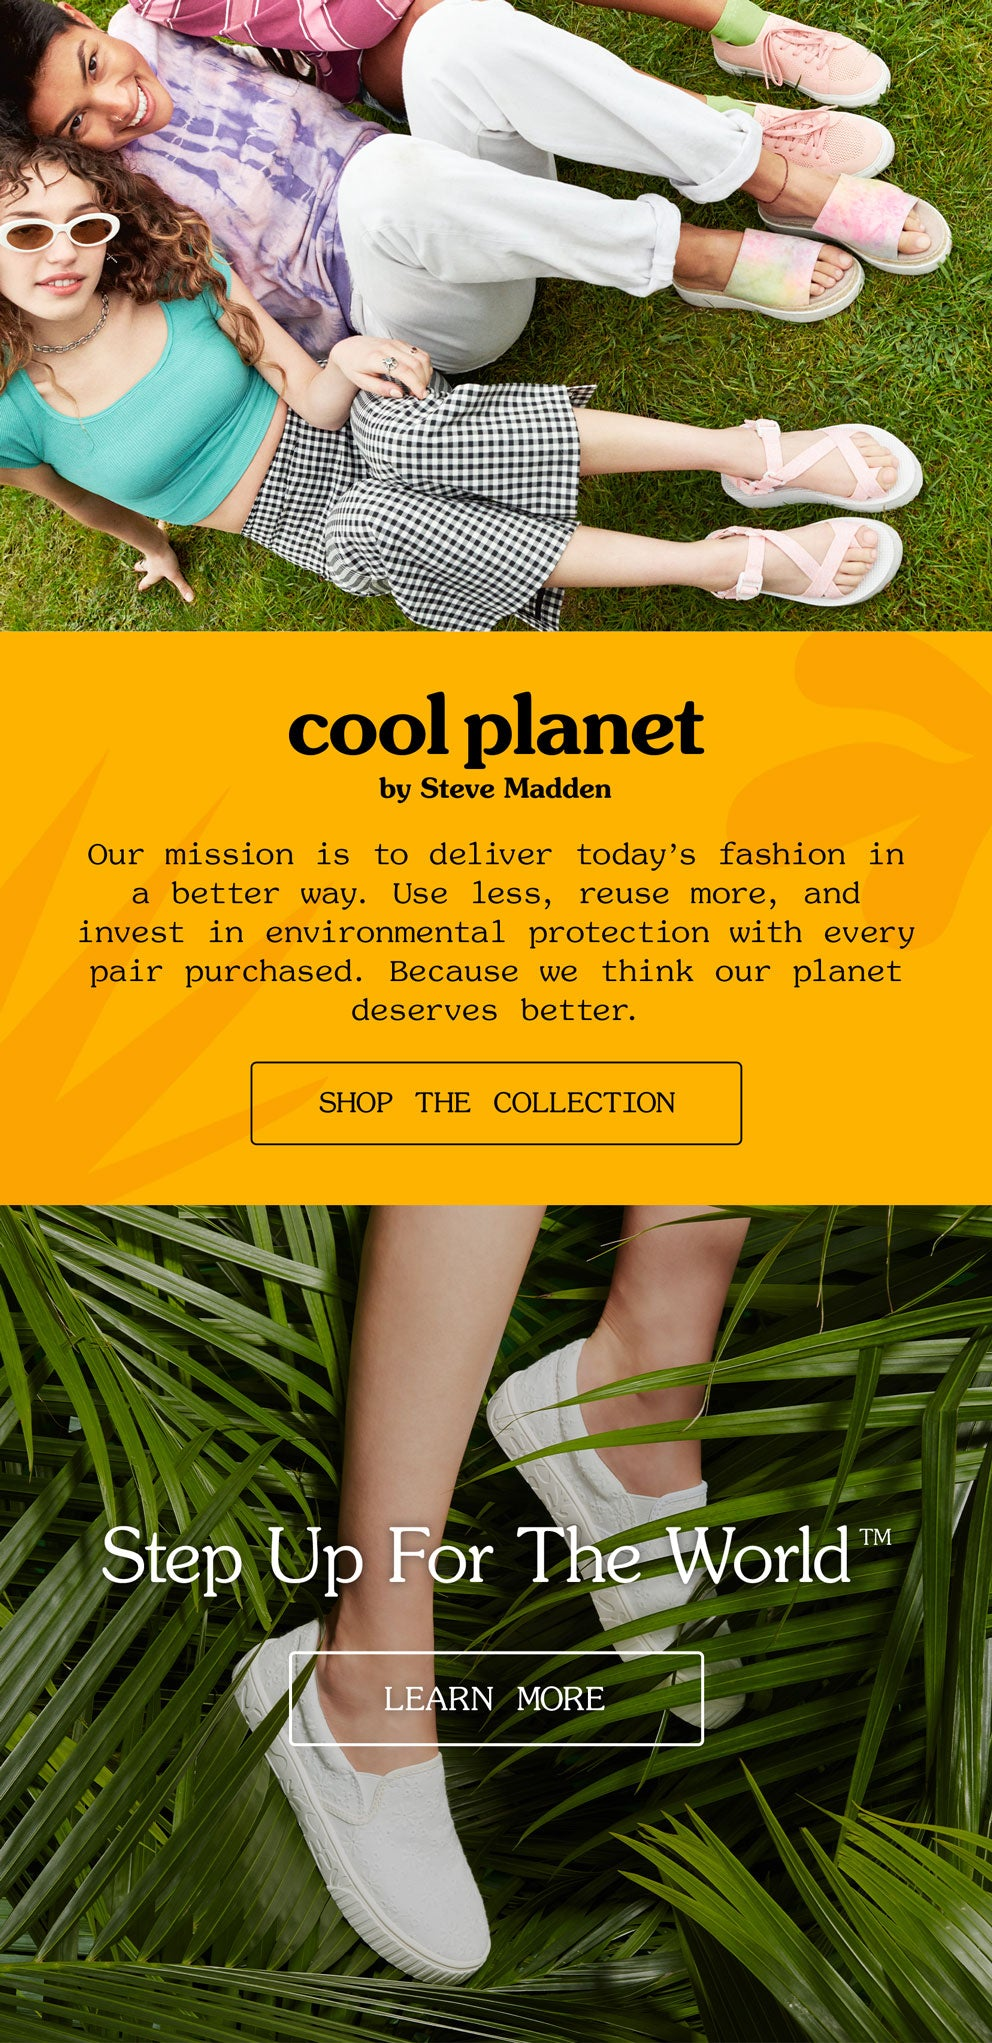 cool planet by Steve Madden Our mission is to deliver today's fashion in a better way. Use less, reuse more, and invest in environmental protection with every pair purchased. Because we think our planet deserves better.